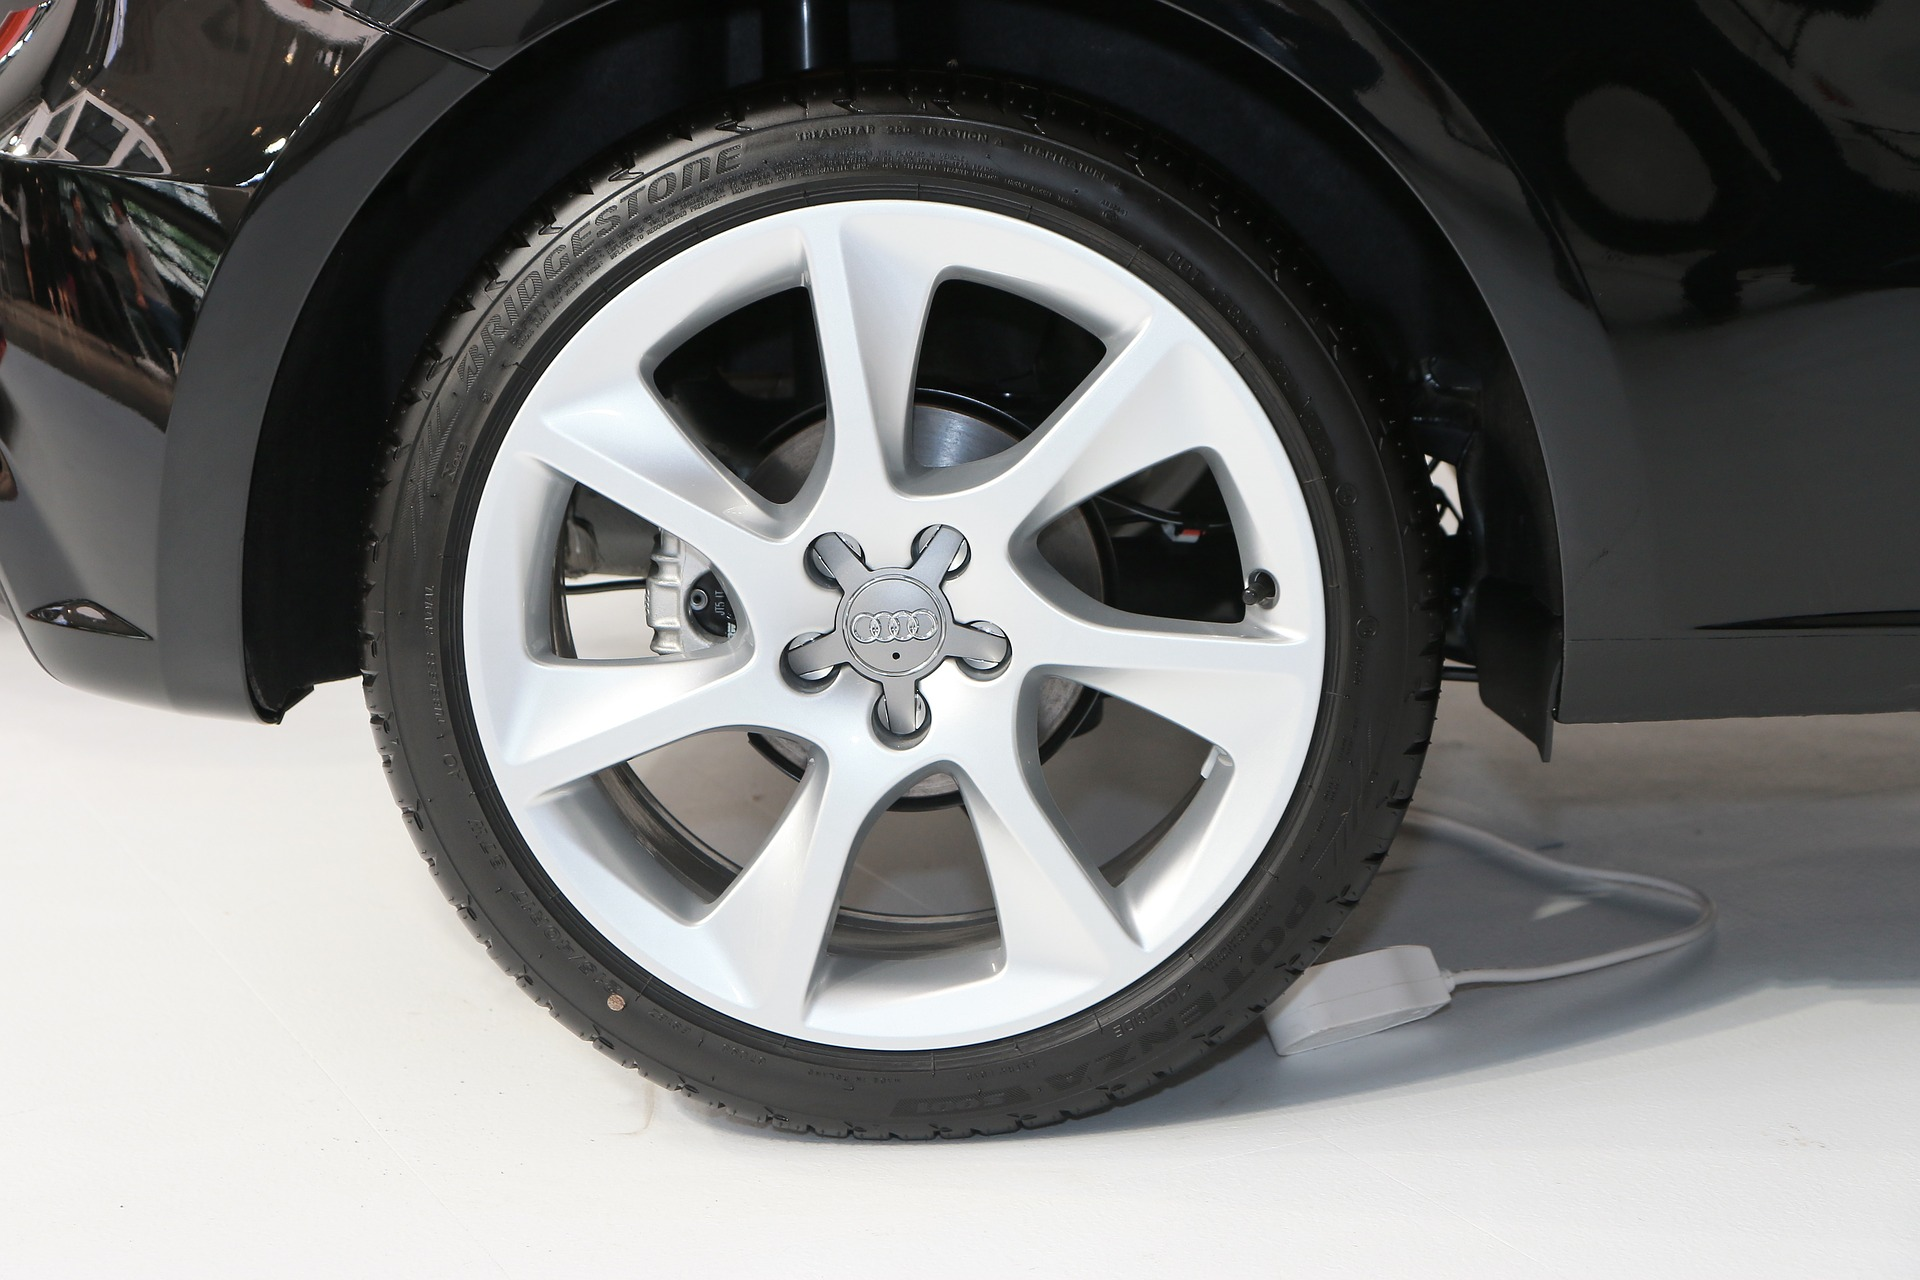 A picture of a tyre with correct tyre pressure on an Audi vehicle